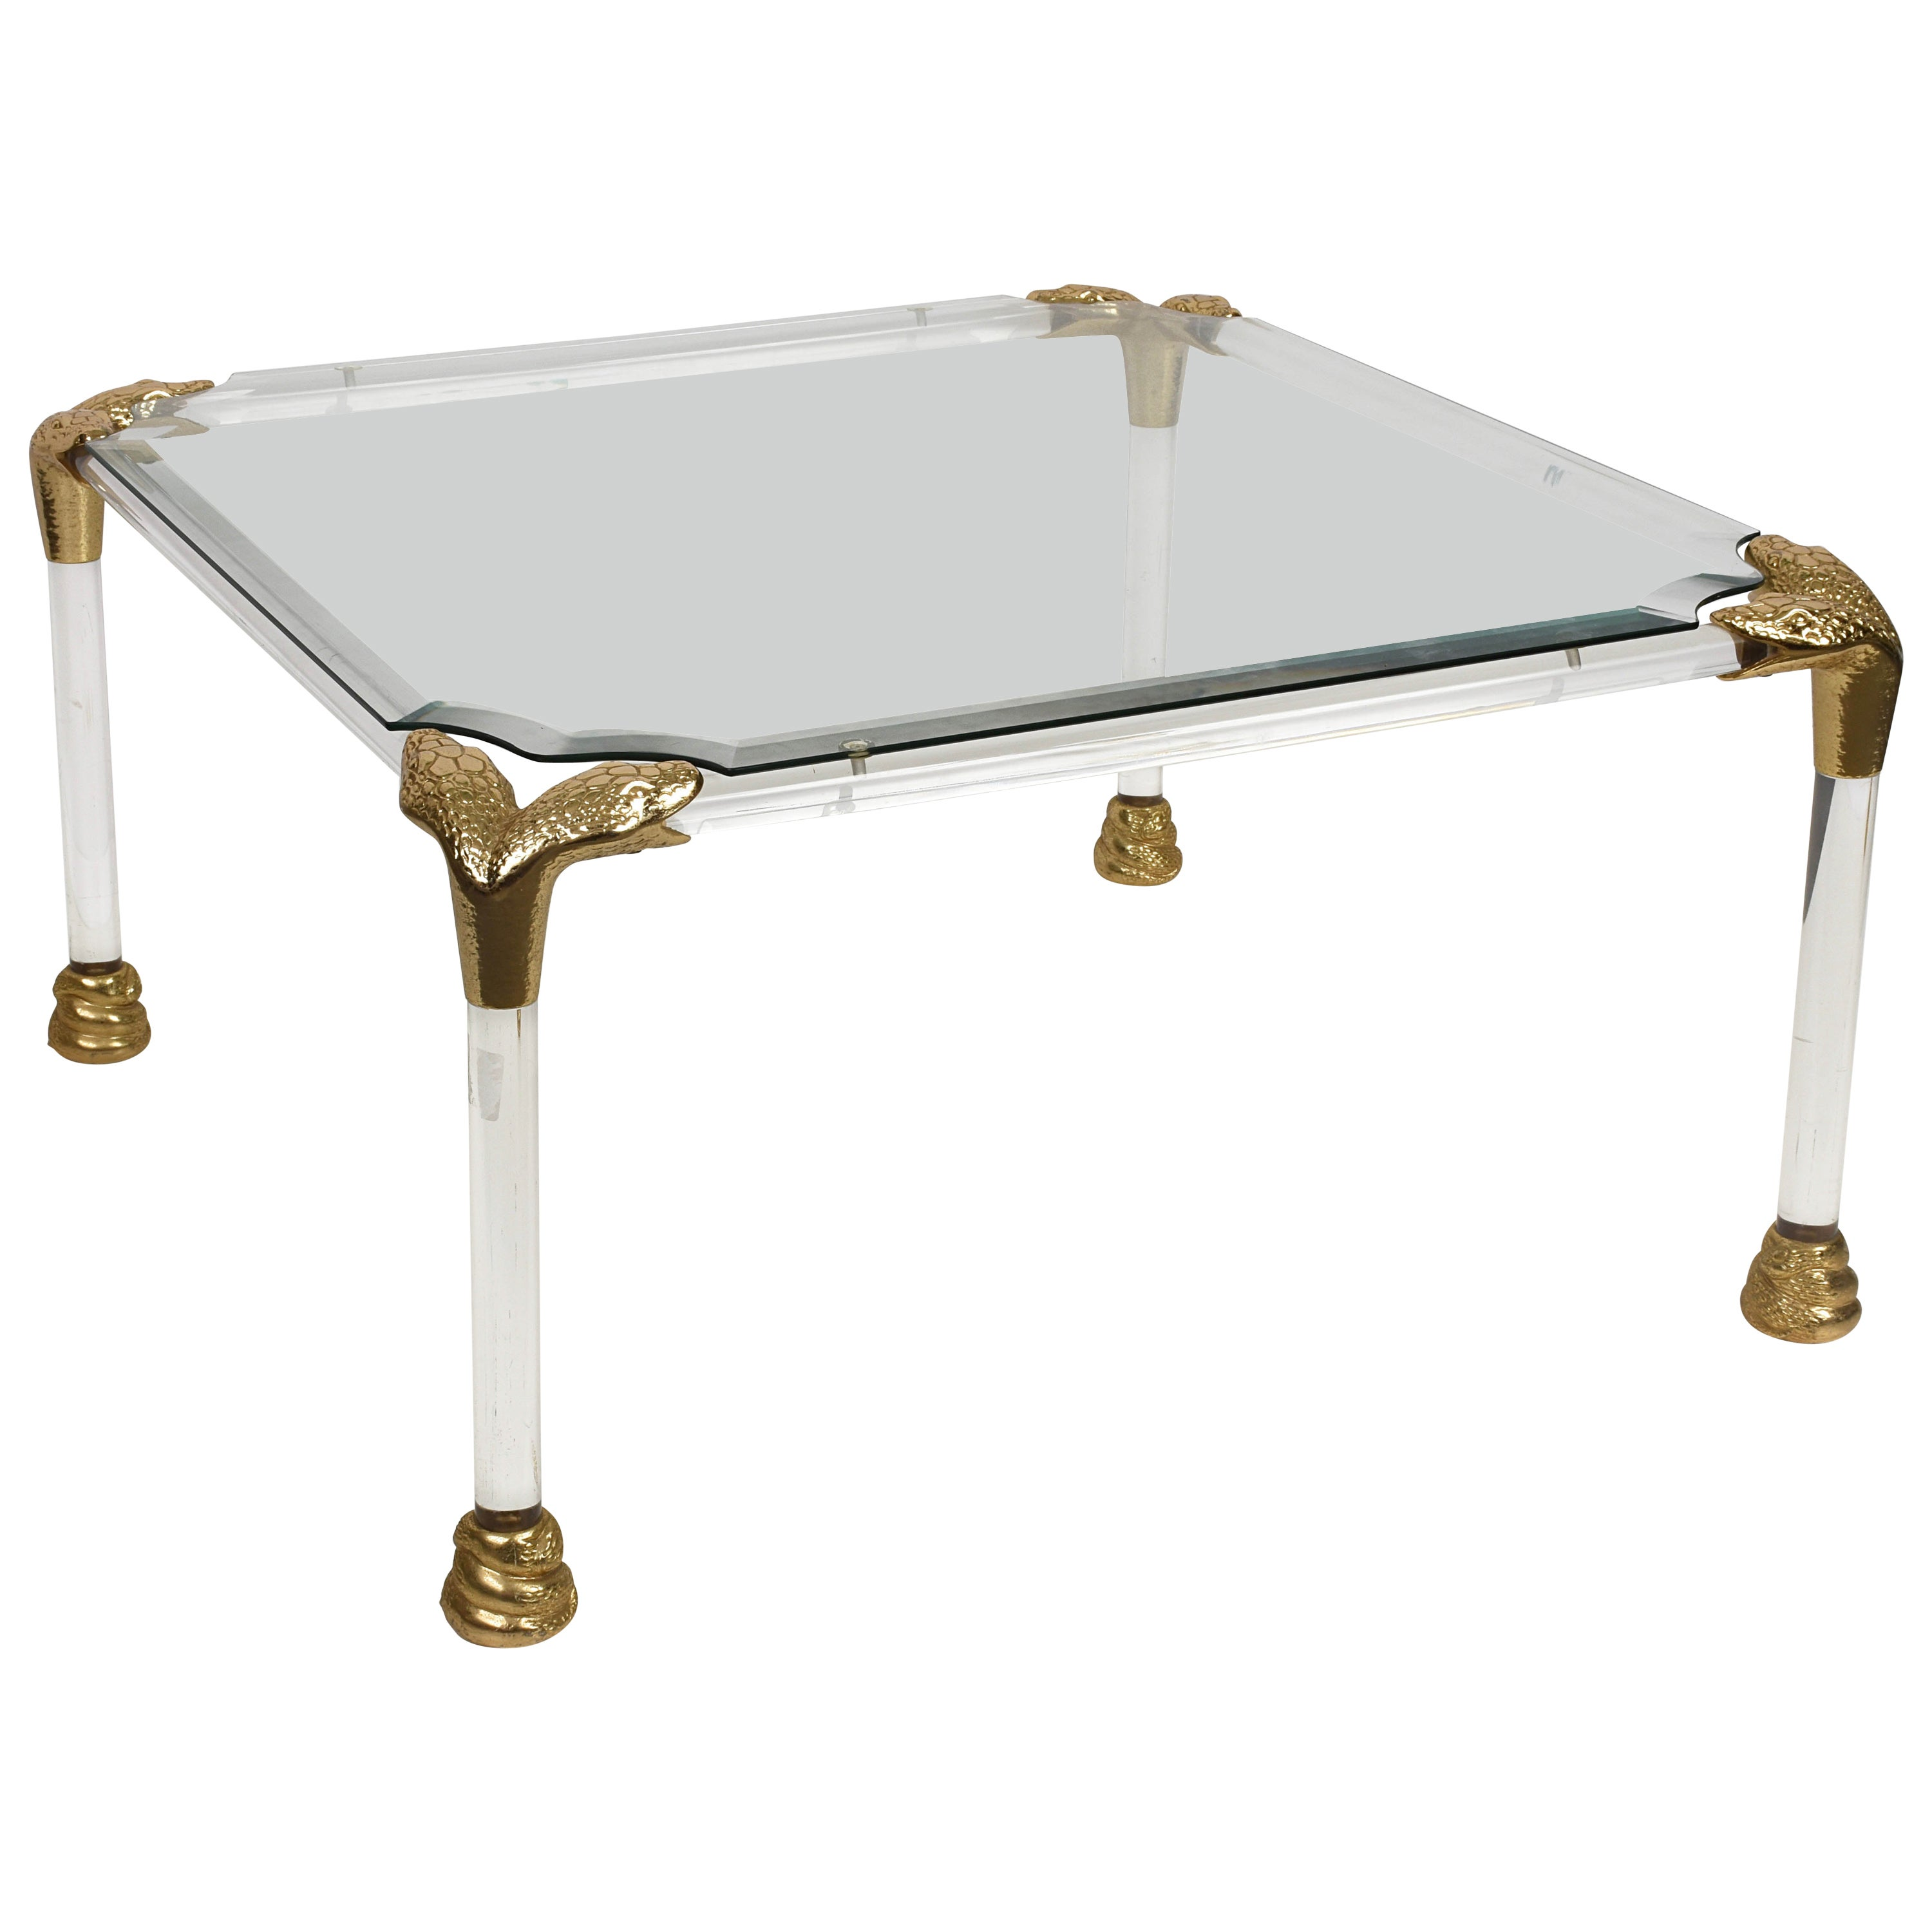 Midcentury Lucite and Brass Italian Coffee Table with Snake Head Details, 1970s